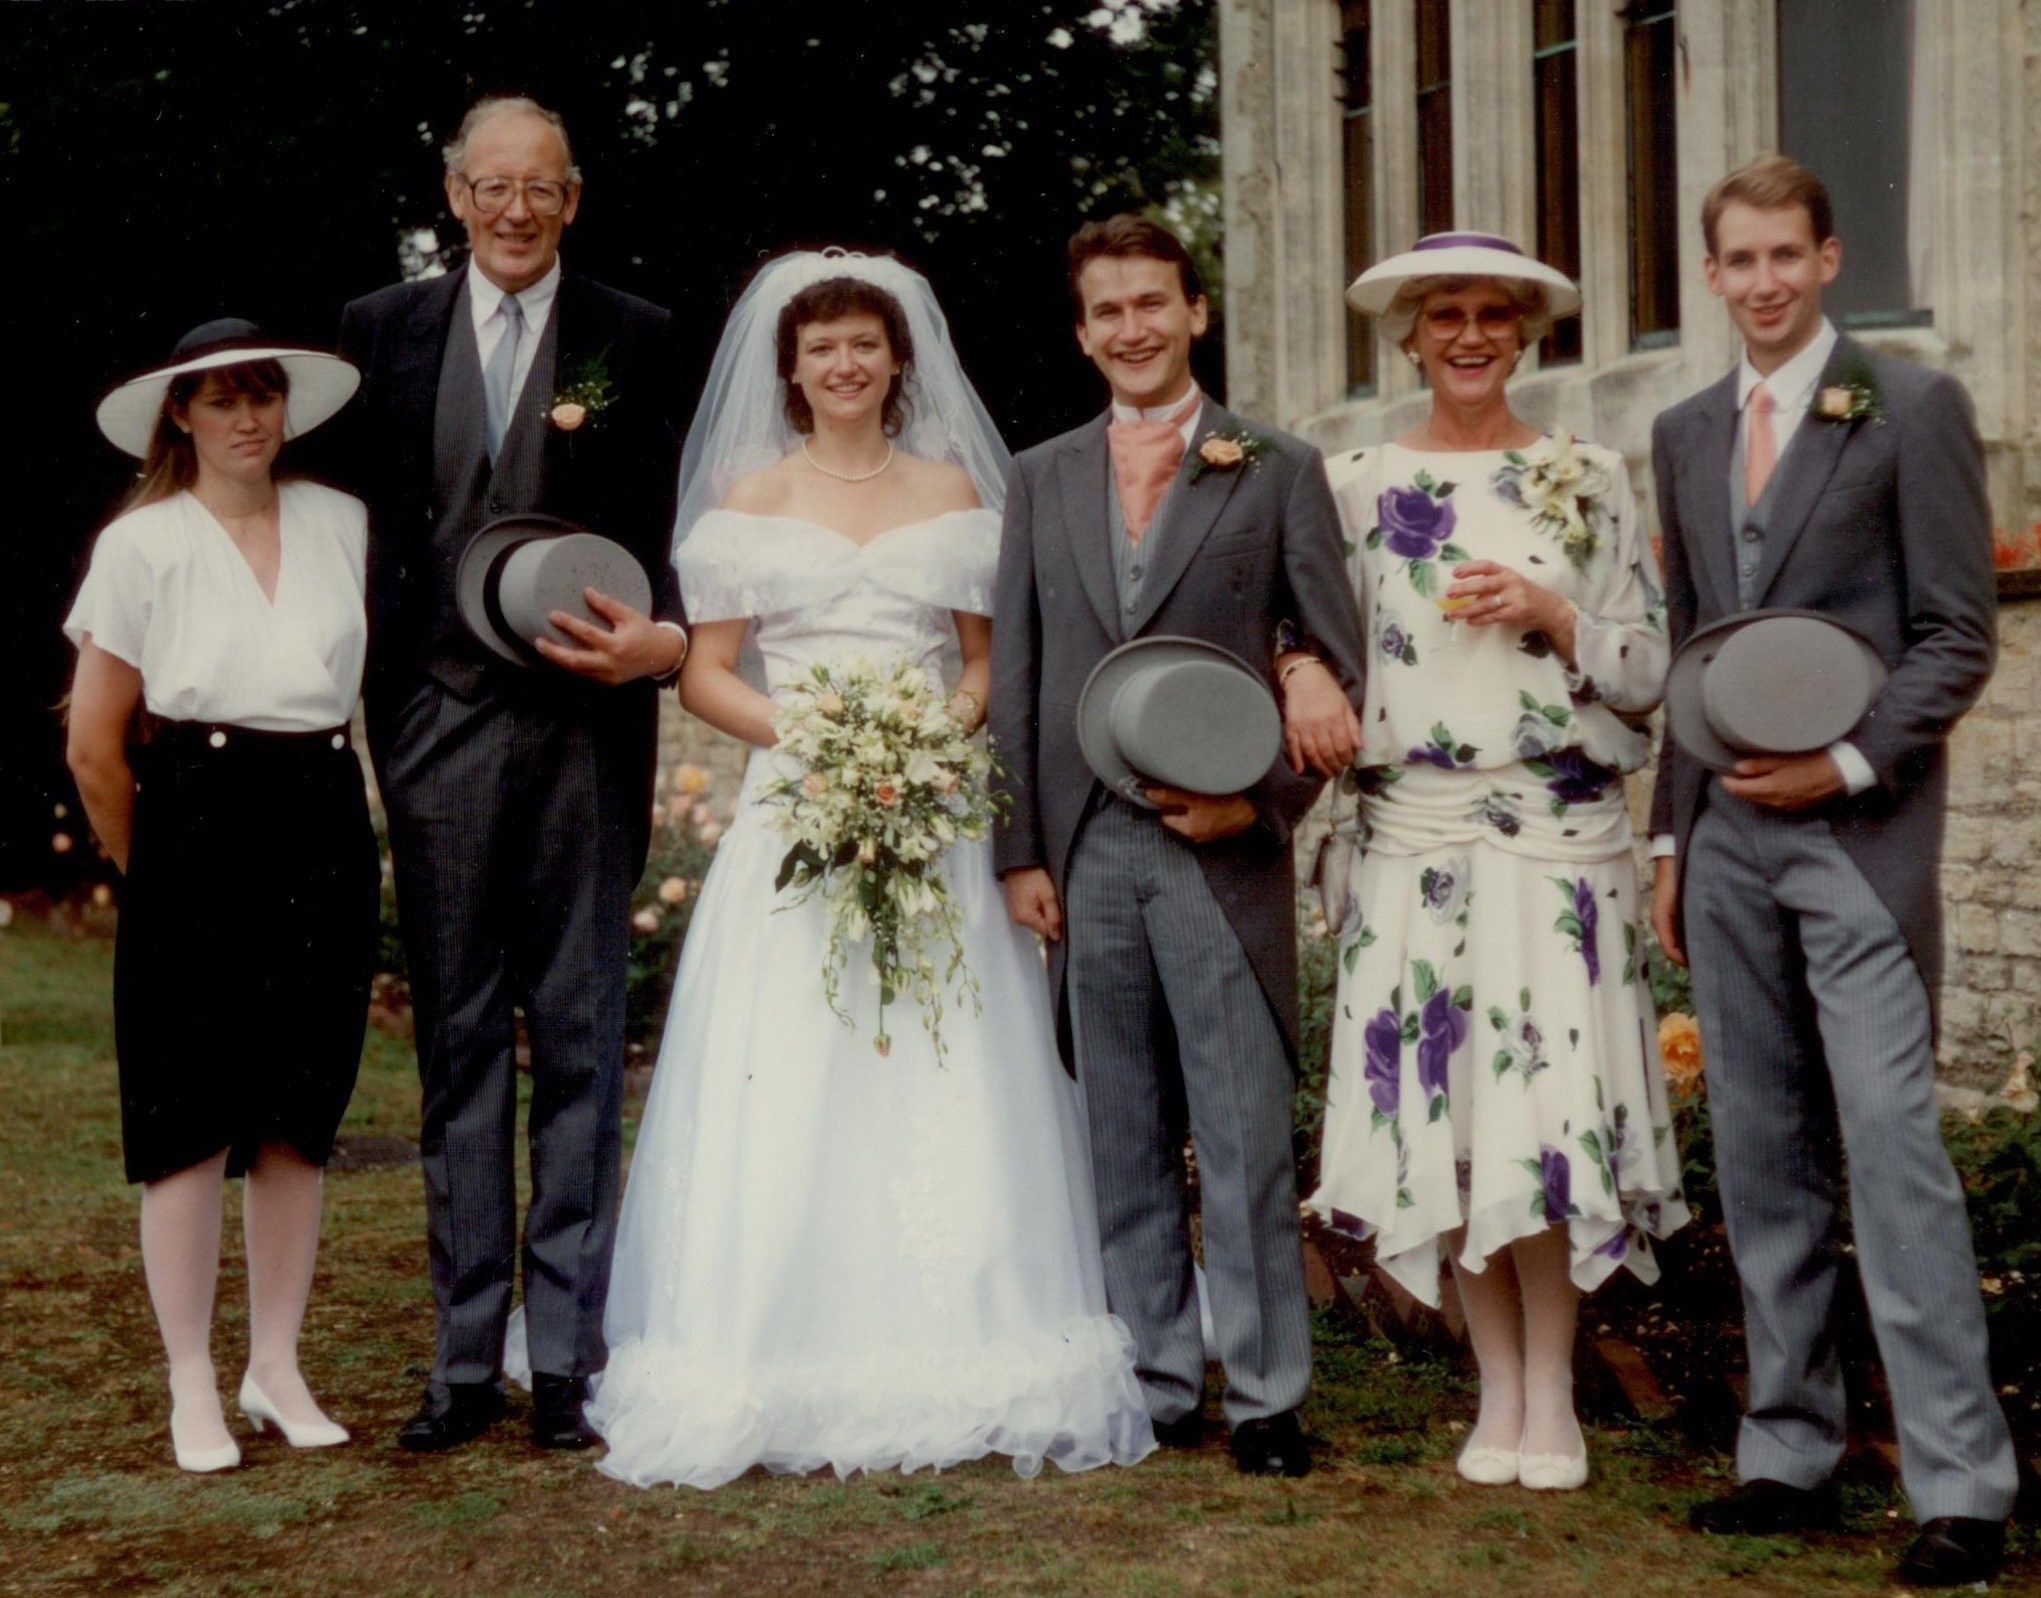 Simon & Kate's wedding 1989